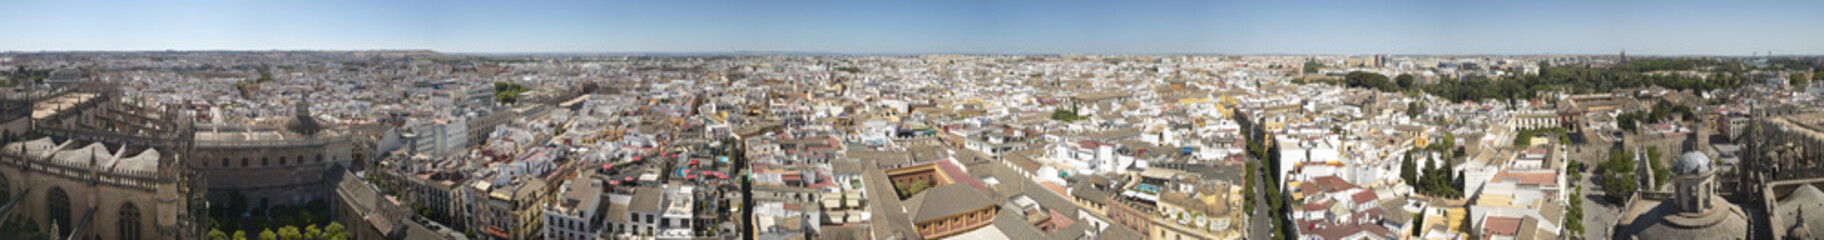 Panoramic view of Seville city from La Giralda tower. Spain